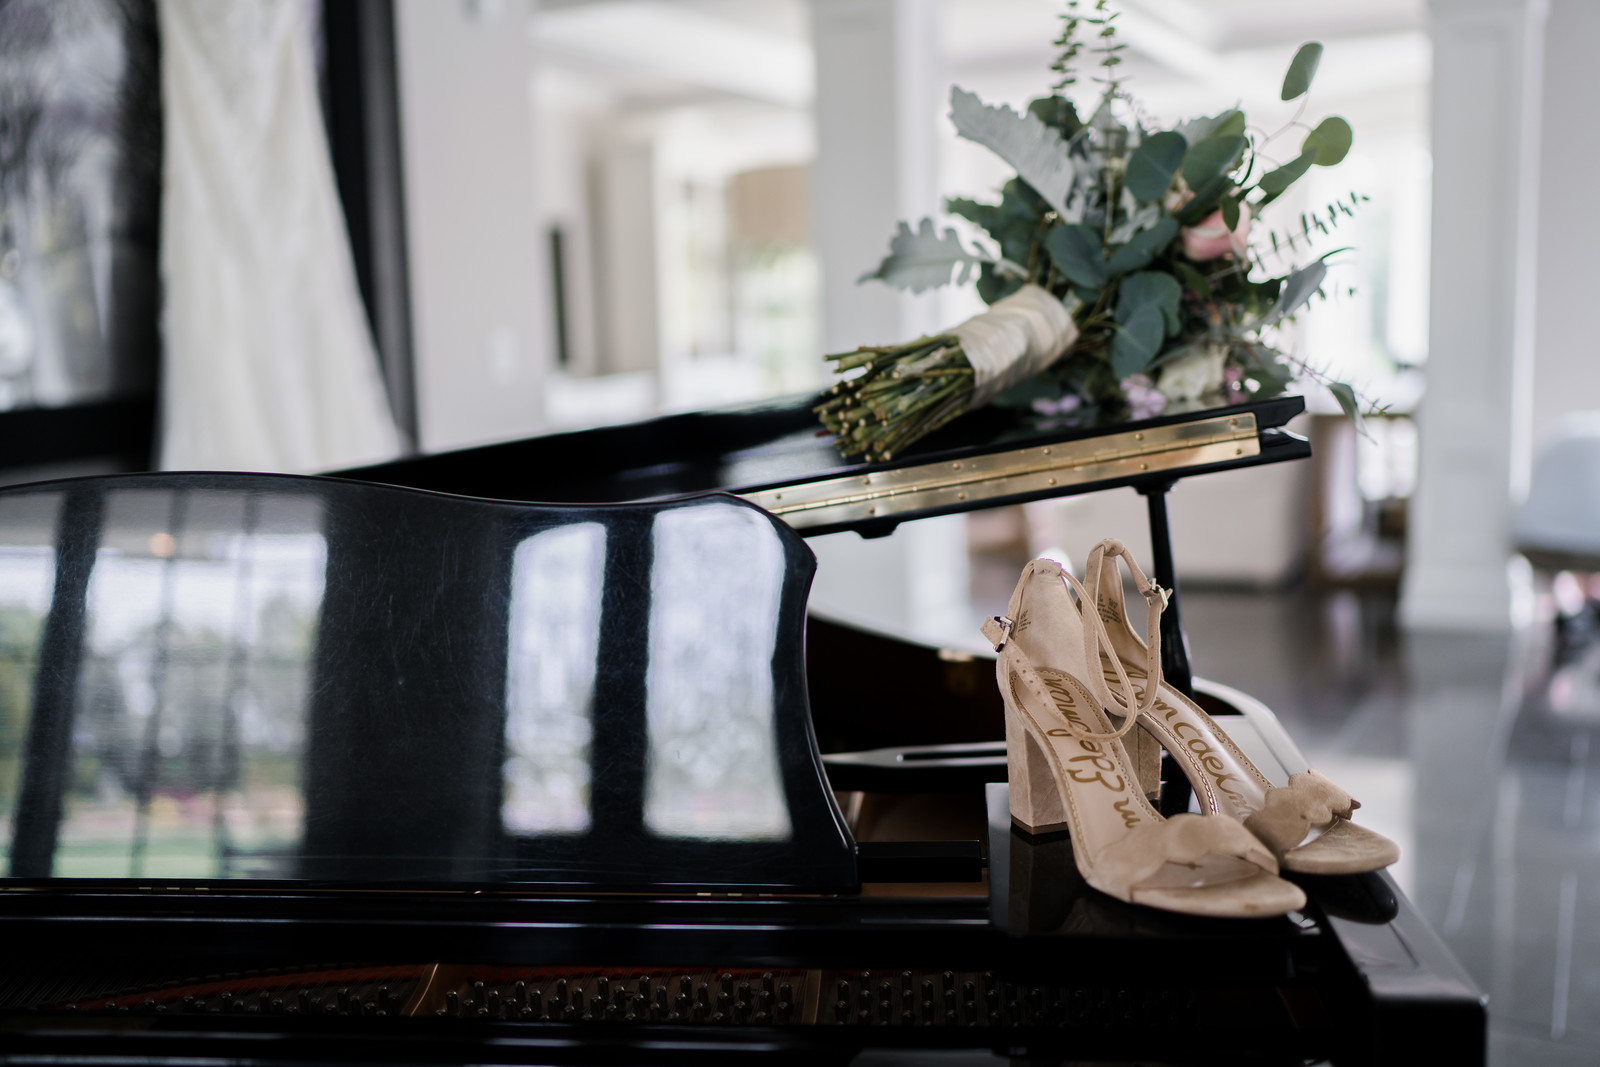 Brides wedding flowers and wedding shoes on a piano